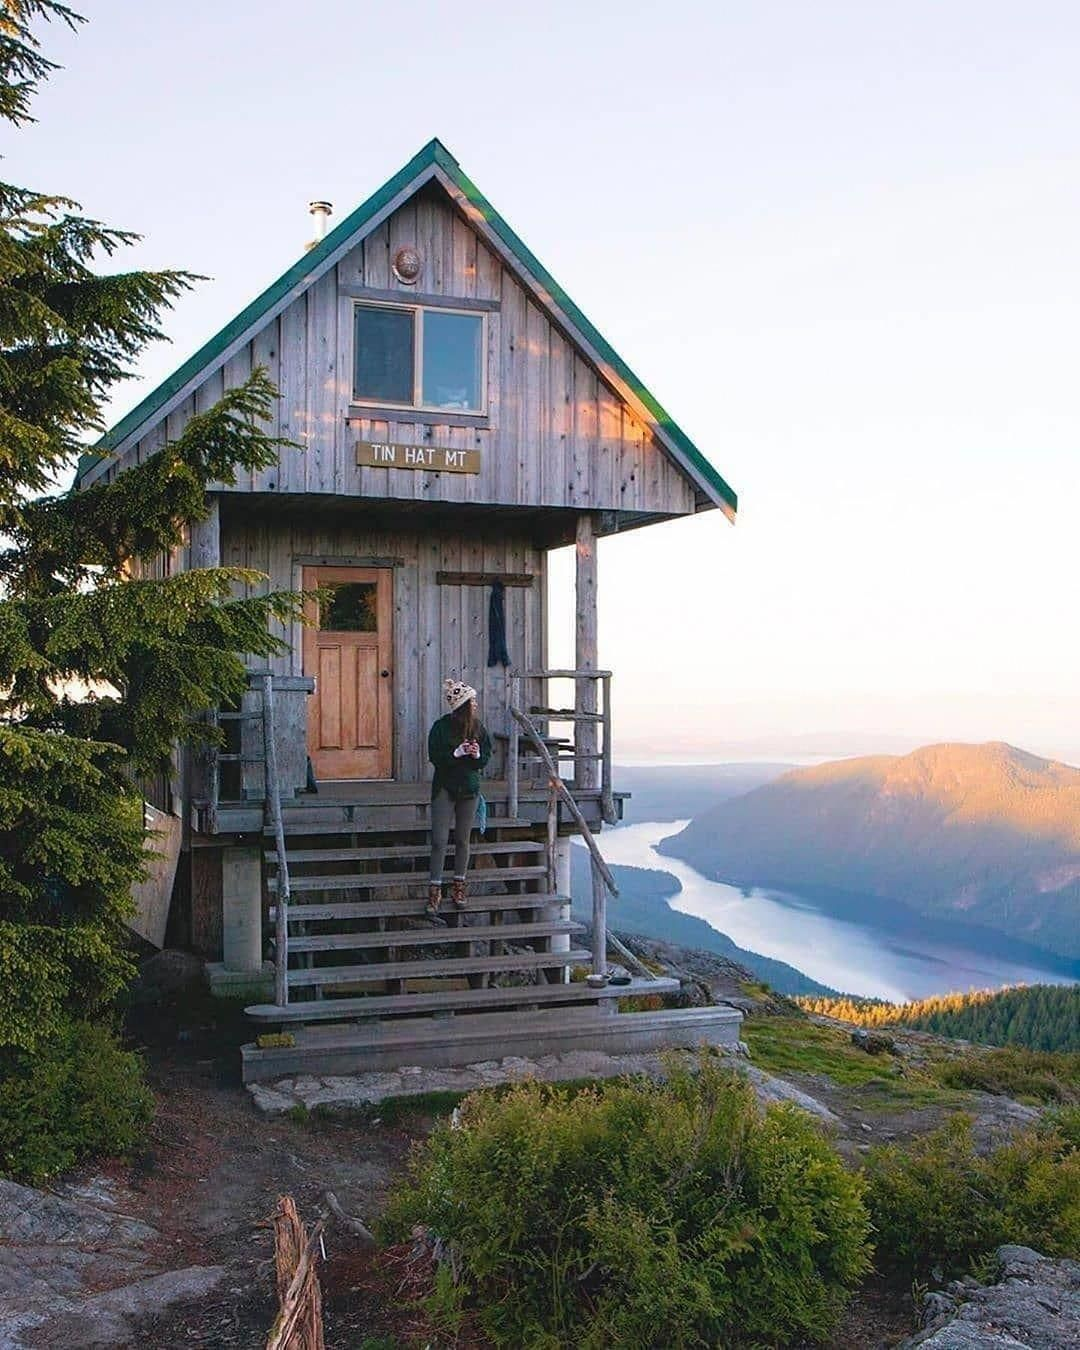 Follow ������ @tinyhousezone • Who wishes they had a view like this everyday? ������ • By @caetay • #tinyhousezone #rumahidaman #rumahcantikidaman #rumahminimalis #rumah #cabinturkey #cabin #cabinlife #nature #forest #housedesign #tinyhouse #aframe #fall #sonbahar #aframecabin #glamping #camping #vanlife #panorama #arthitecture #woodw #Aframehouse